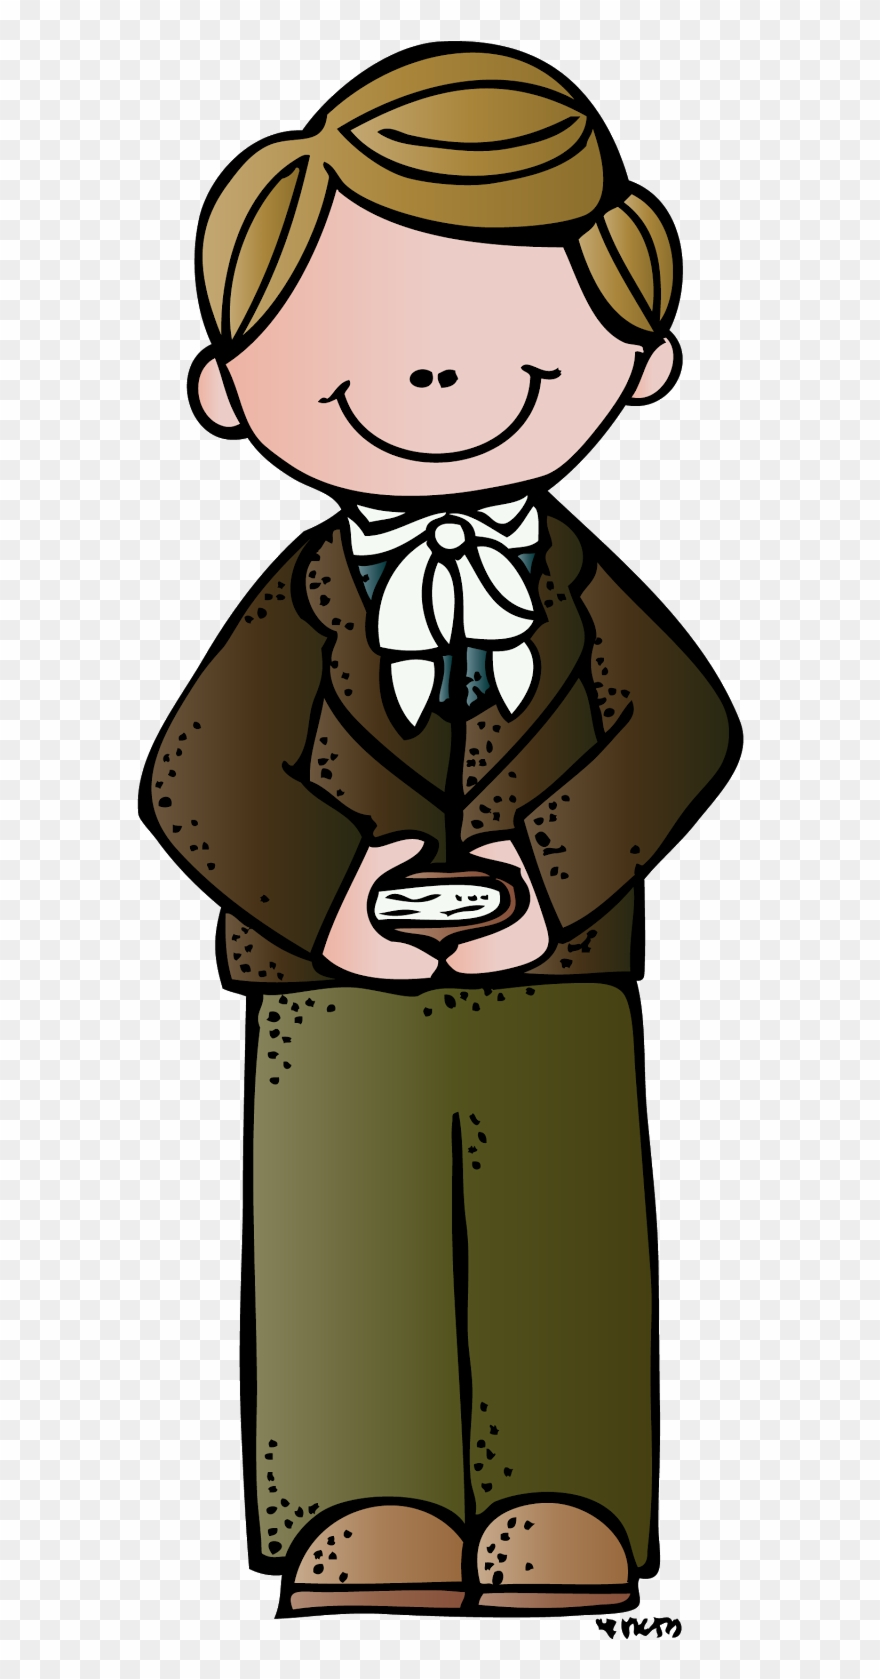 Displaying lds clipart missionary   ClipartMonk - Free Clip Art Images